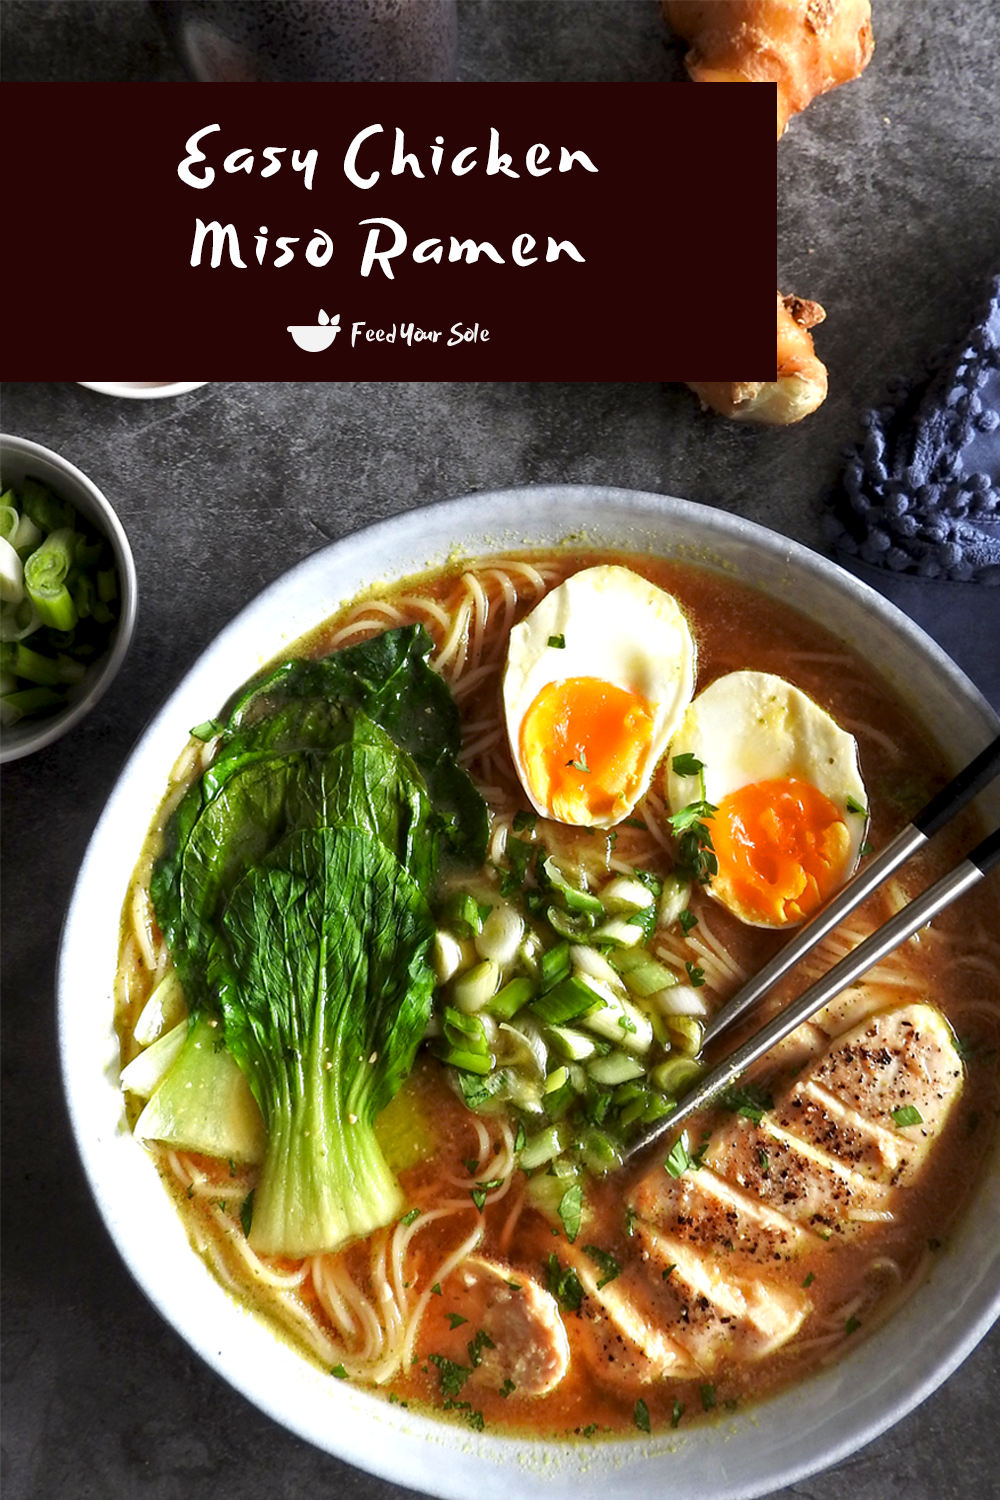 Super warming, rich and salty. This beautiful Easy Chicken Miso Ramen is an amazing comforting meal with hints of ginger and spring onion. Plus it only comes in at 550 calories!  #ramen #miso #misoramen #chickenramen #japanesefood #japaneserecipe